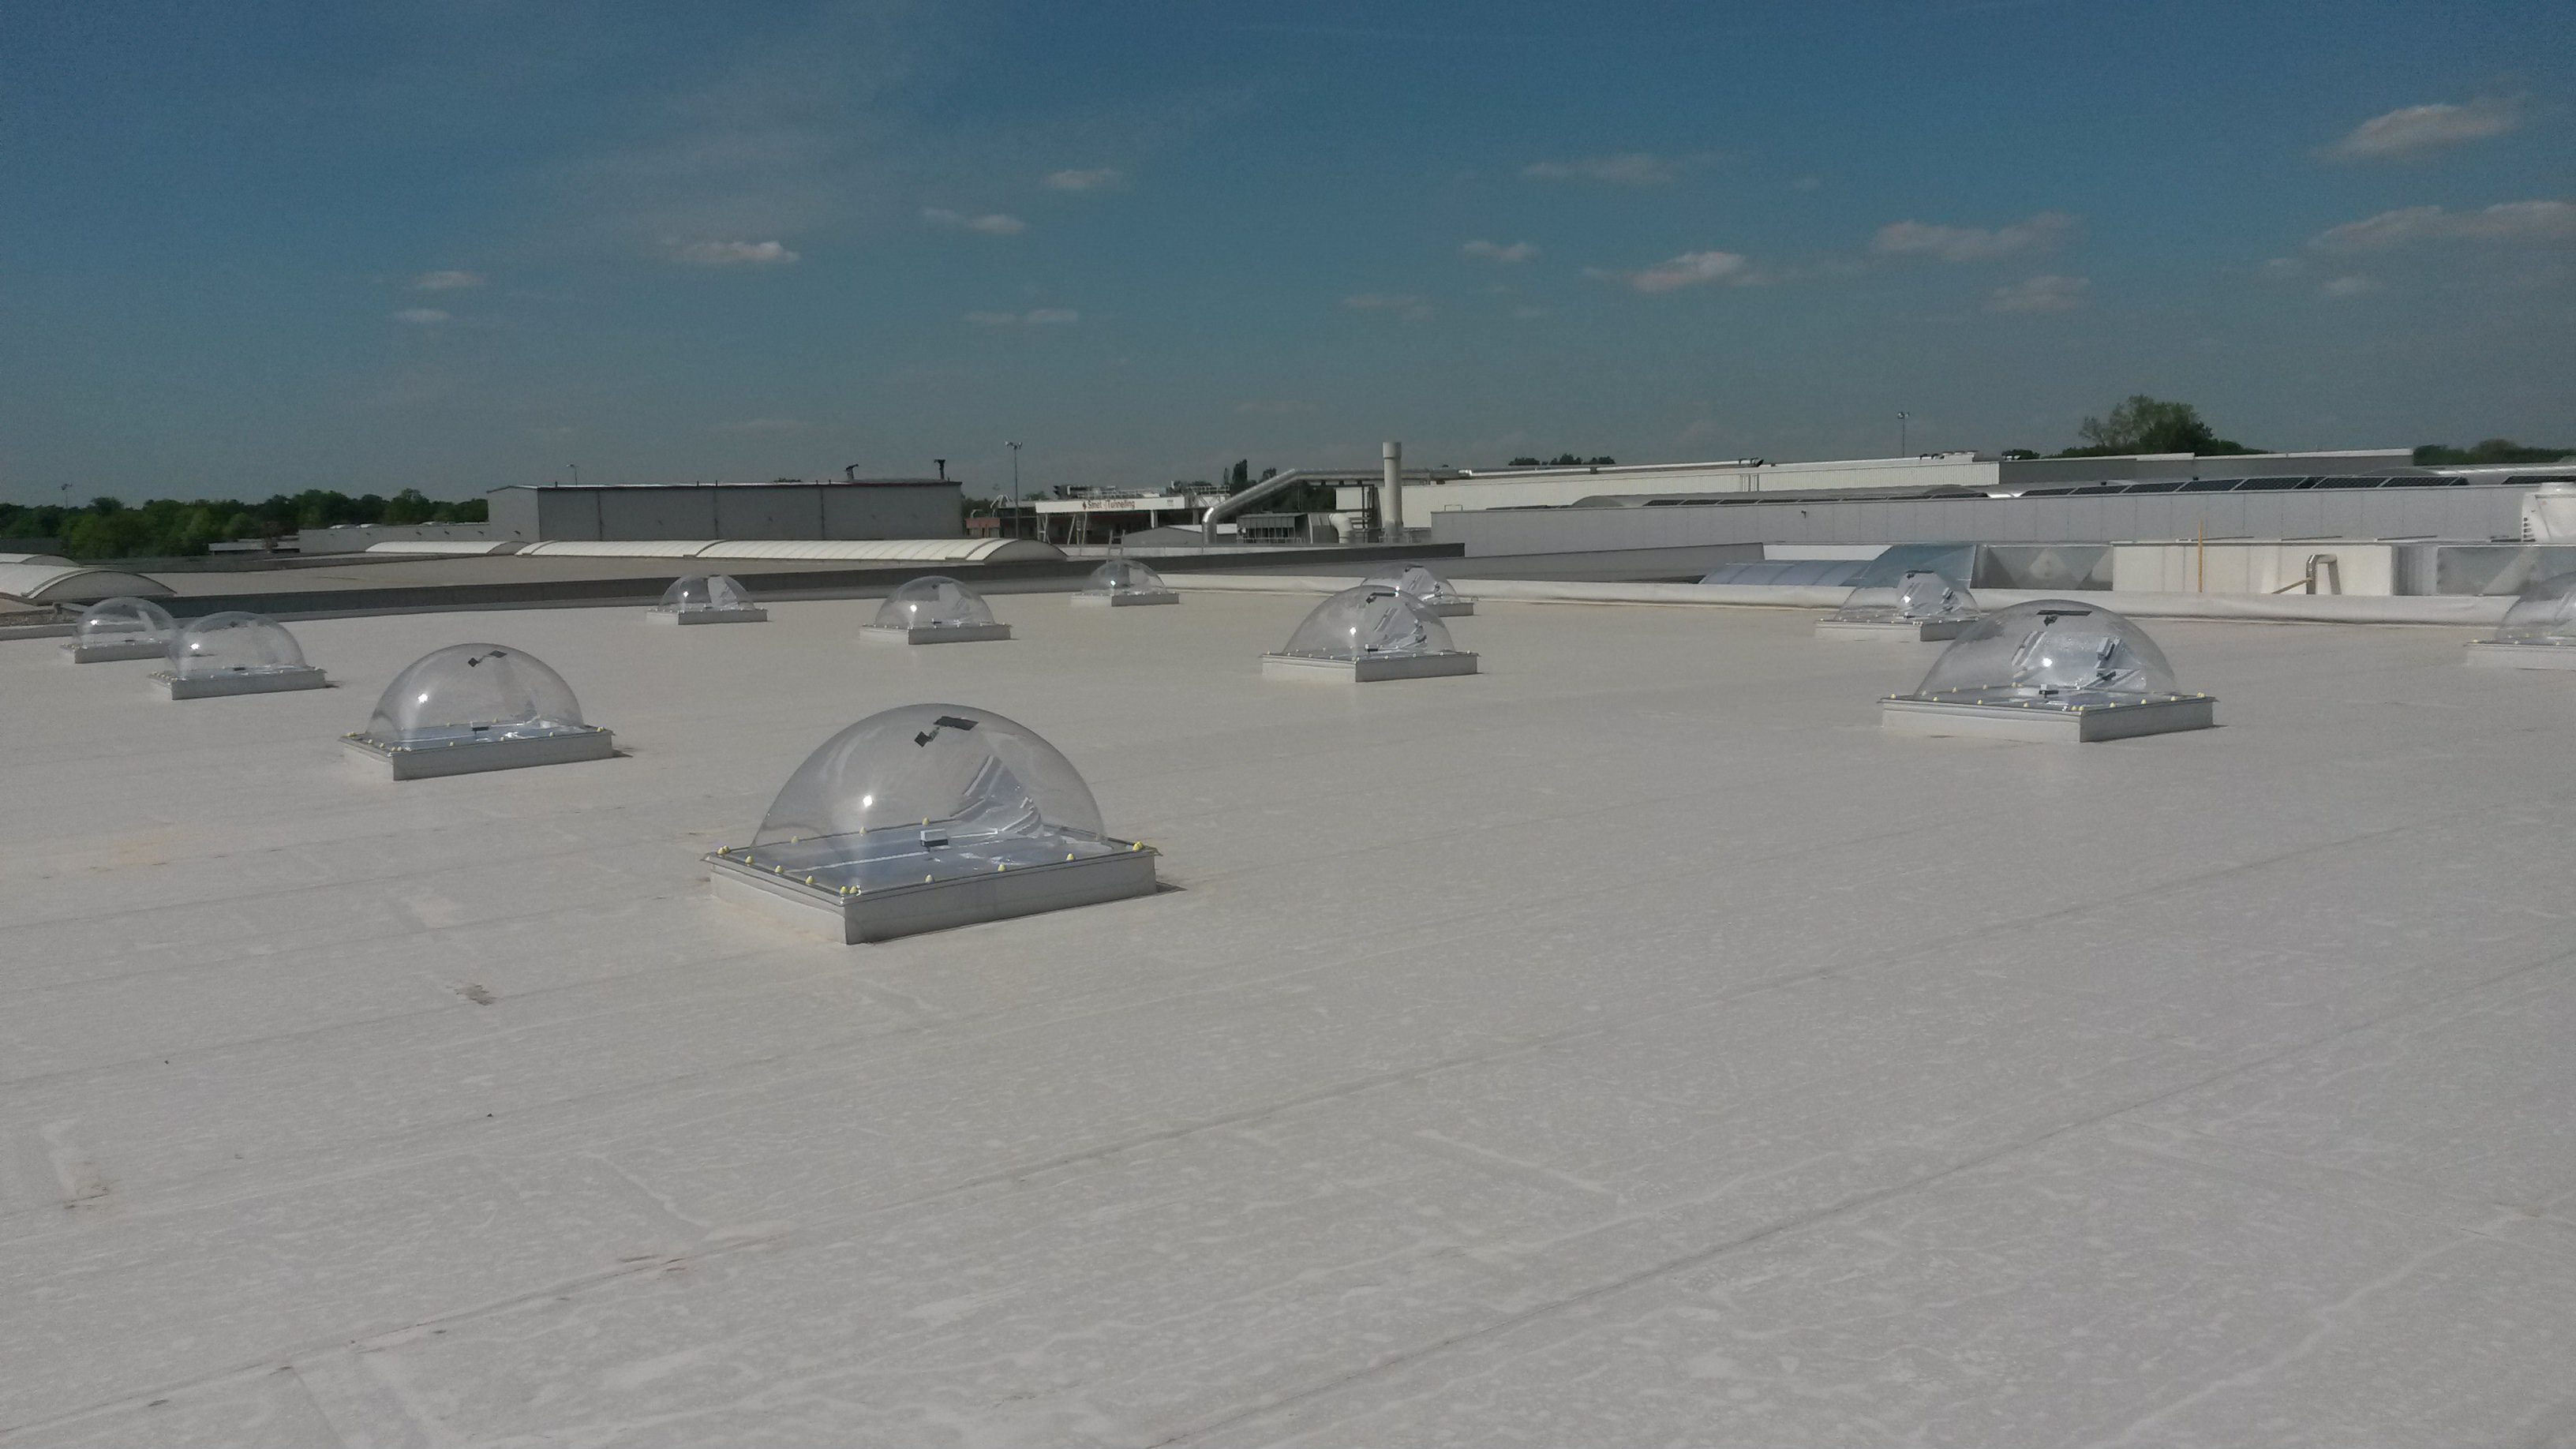 smart-skylight-dome-lsb blokhutten-3